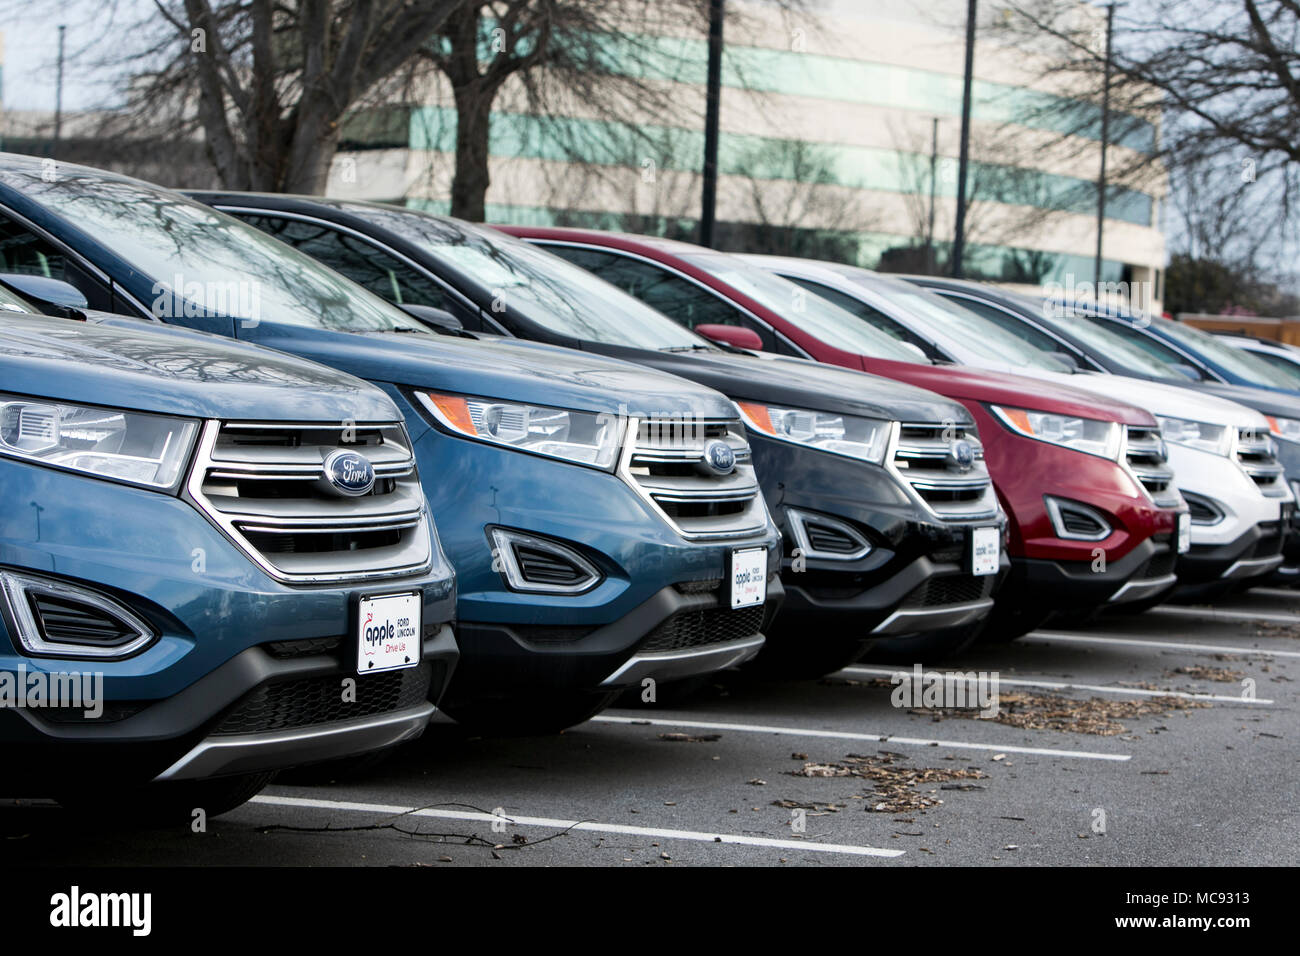 A Row Of New Ford Edge Suv Vehicles At A Car Dealership In Columbia Maryland